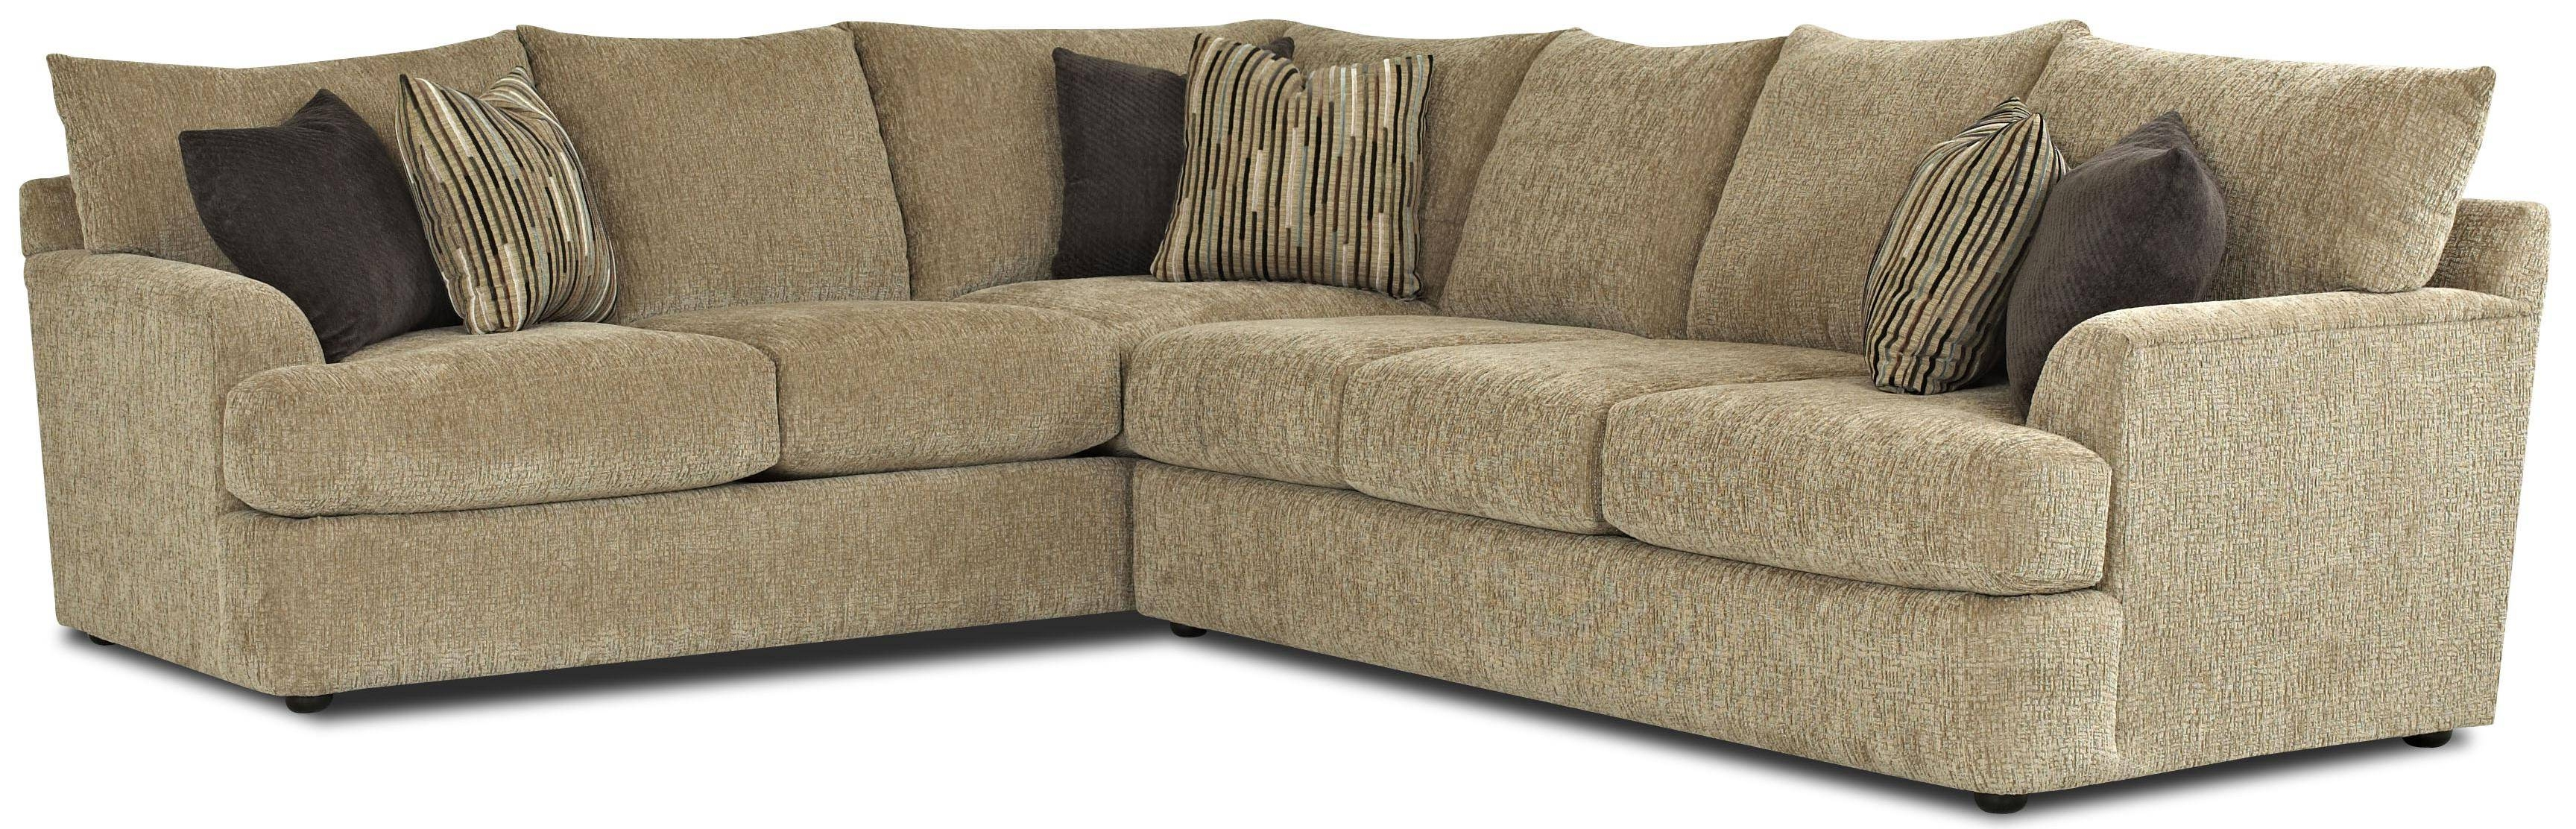 Appealing Sectional Sofas Cheap Prices 90 With Additional with Sofas Cheap Prices (Image 3 of 30)